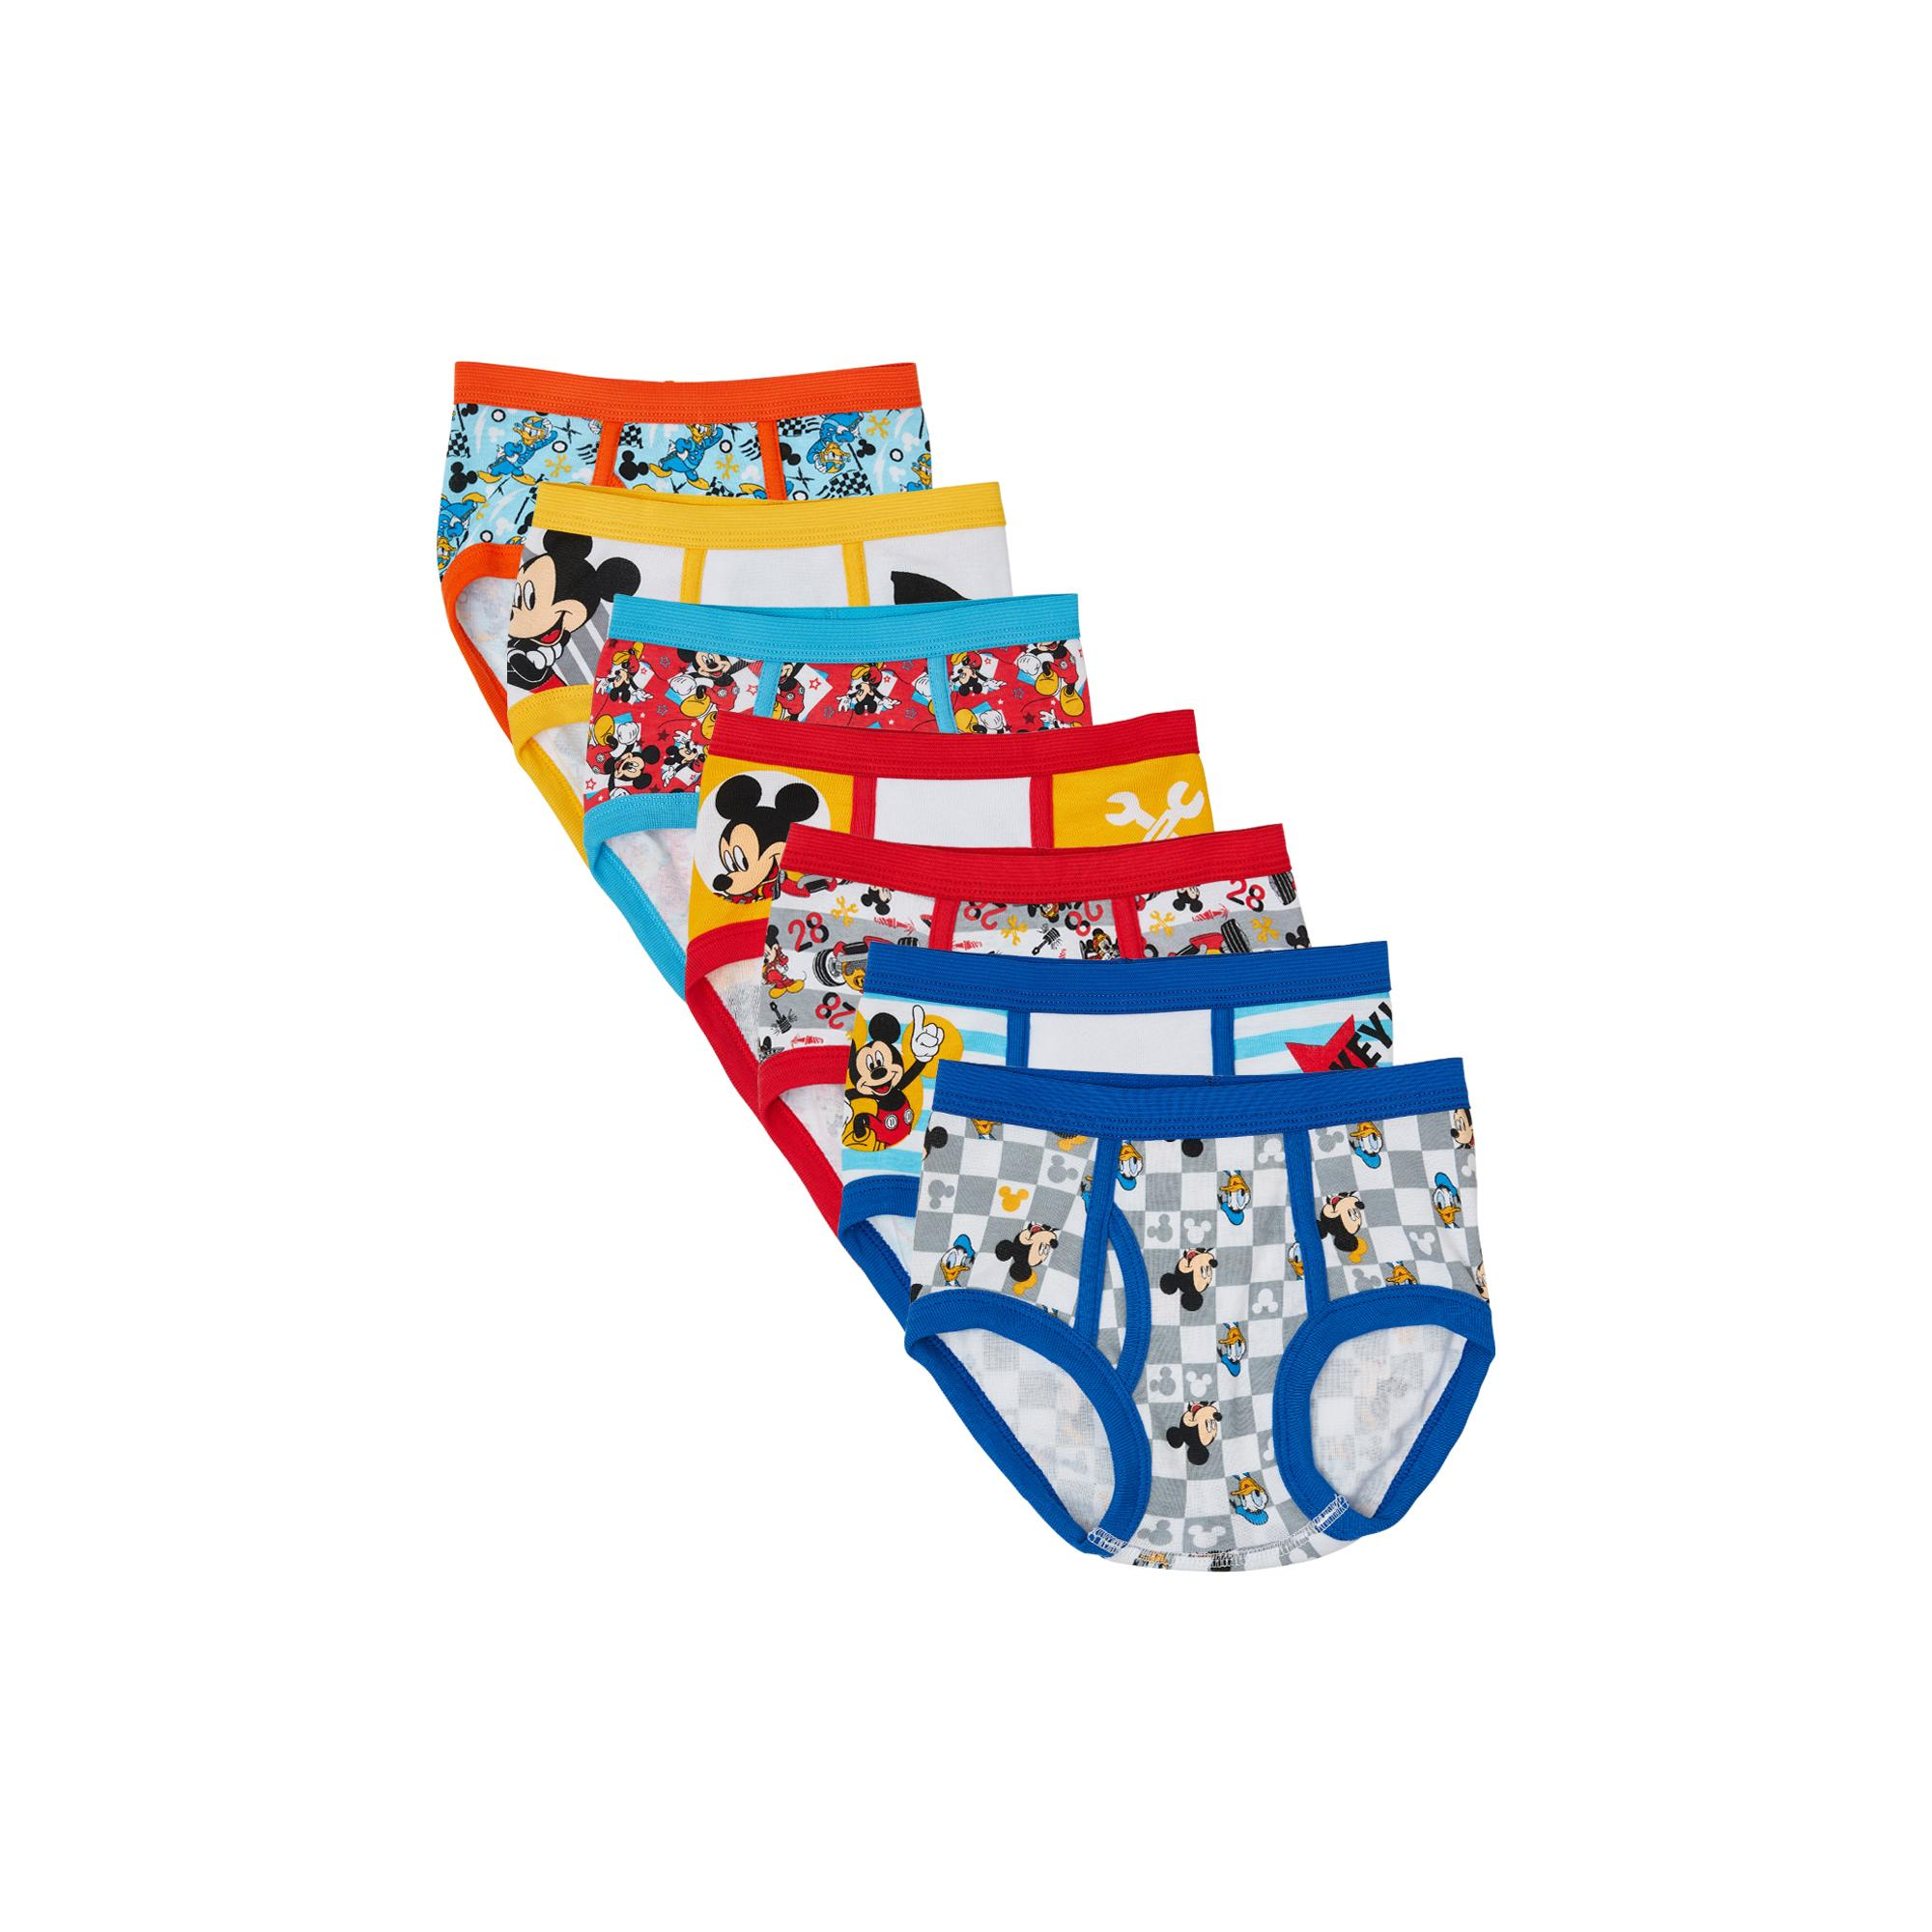 Disney Toddler Boy Underwear, 7-Pack